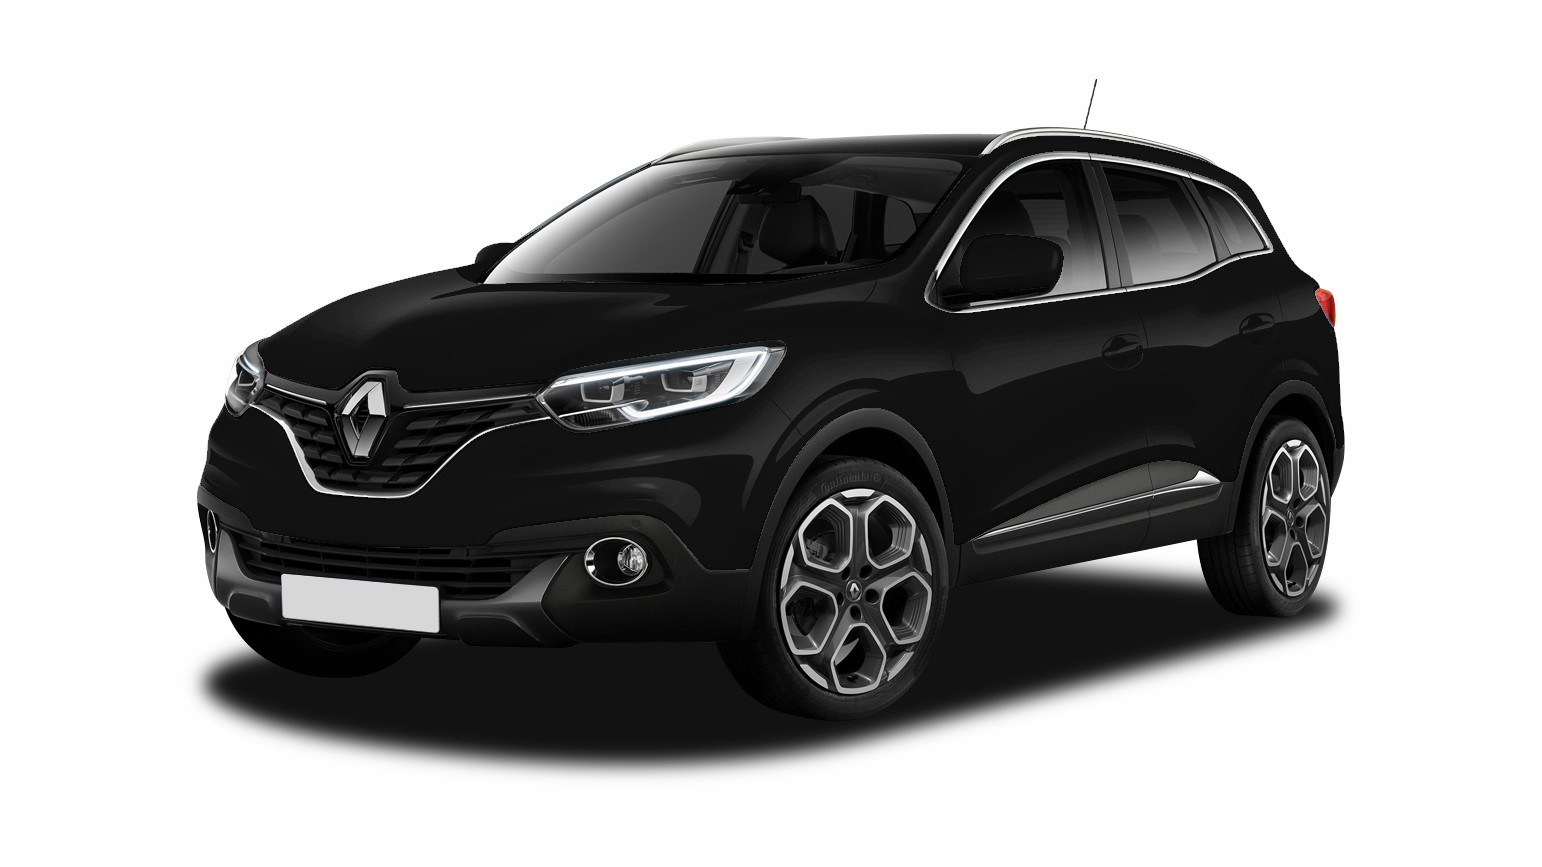 renault kadjar 4x2 et suv 5 portes diesel 1 6 dci 130 auto bo te automatique ou. Black Bedroom Furniture Sets. Home Design Ideas